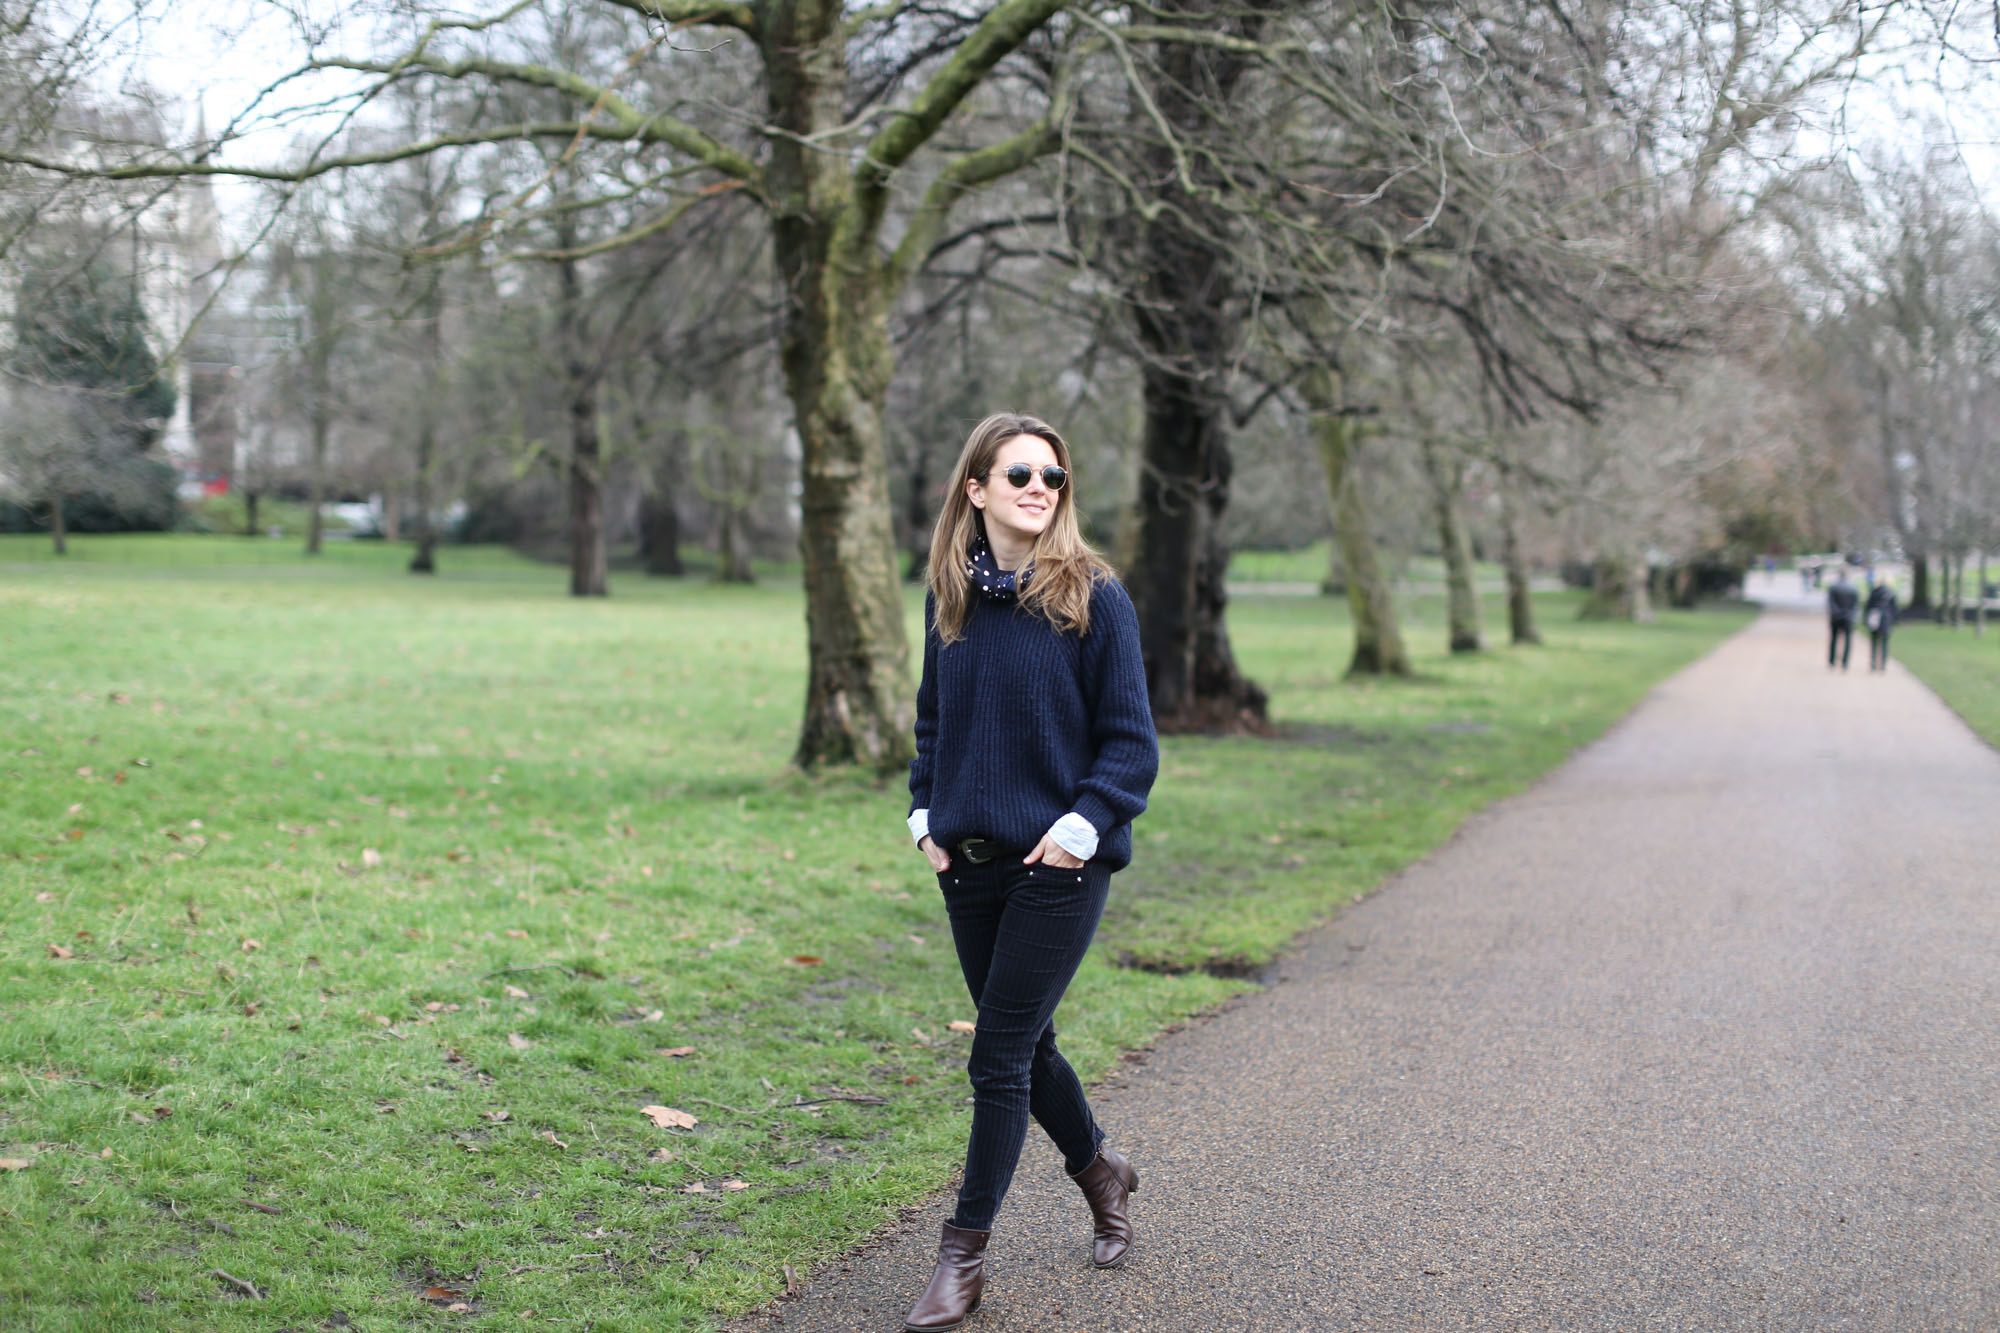 Clochet-streetstyle-london-hyde-park-cos-coat-navy-chunky-knit-5